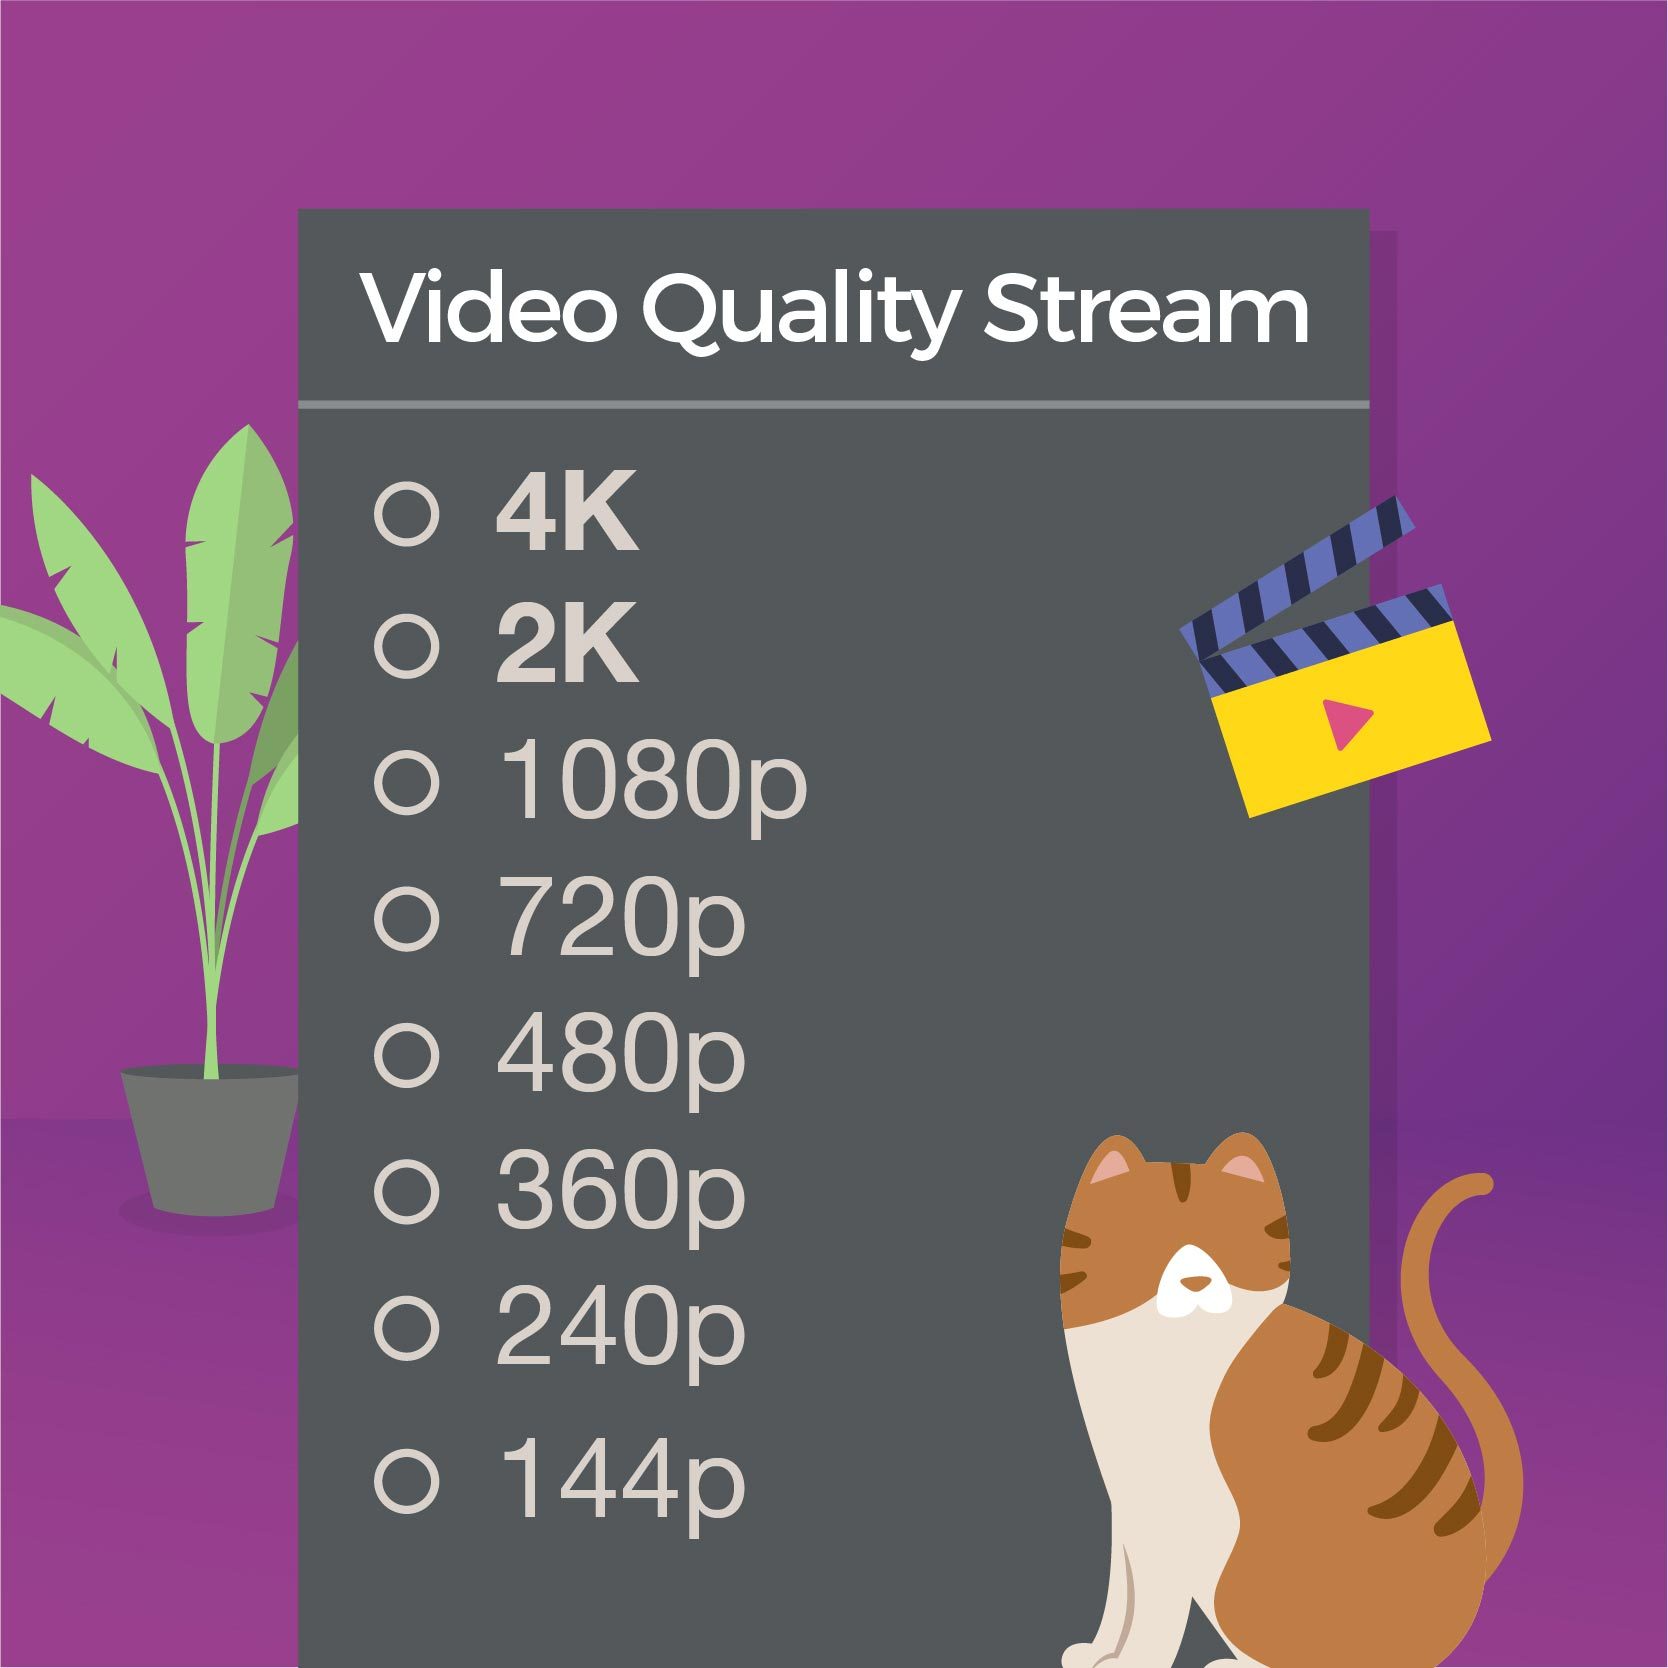 What video quality stream normally?